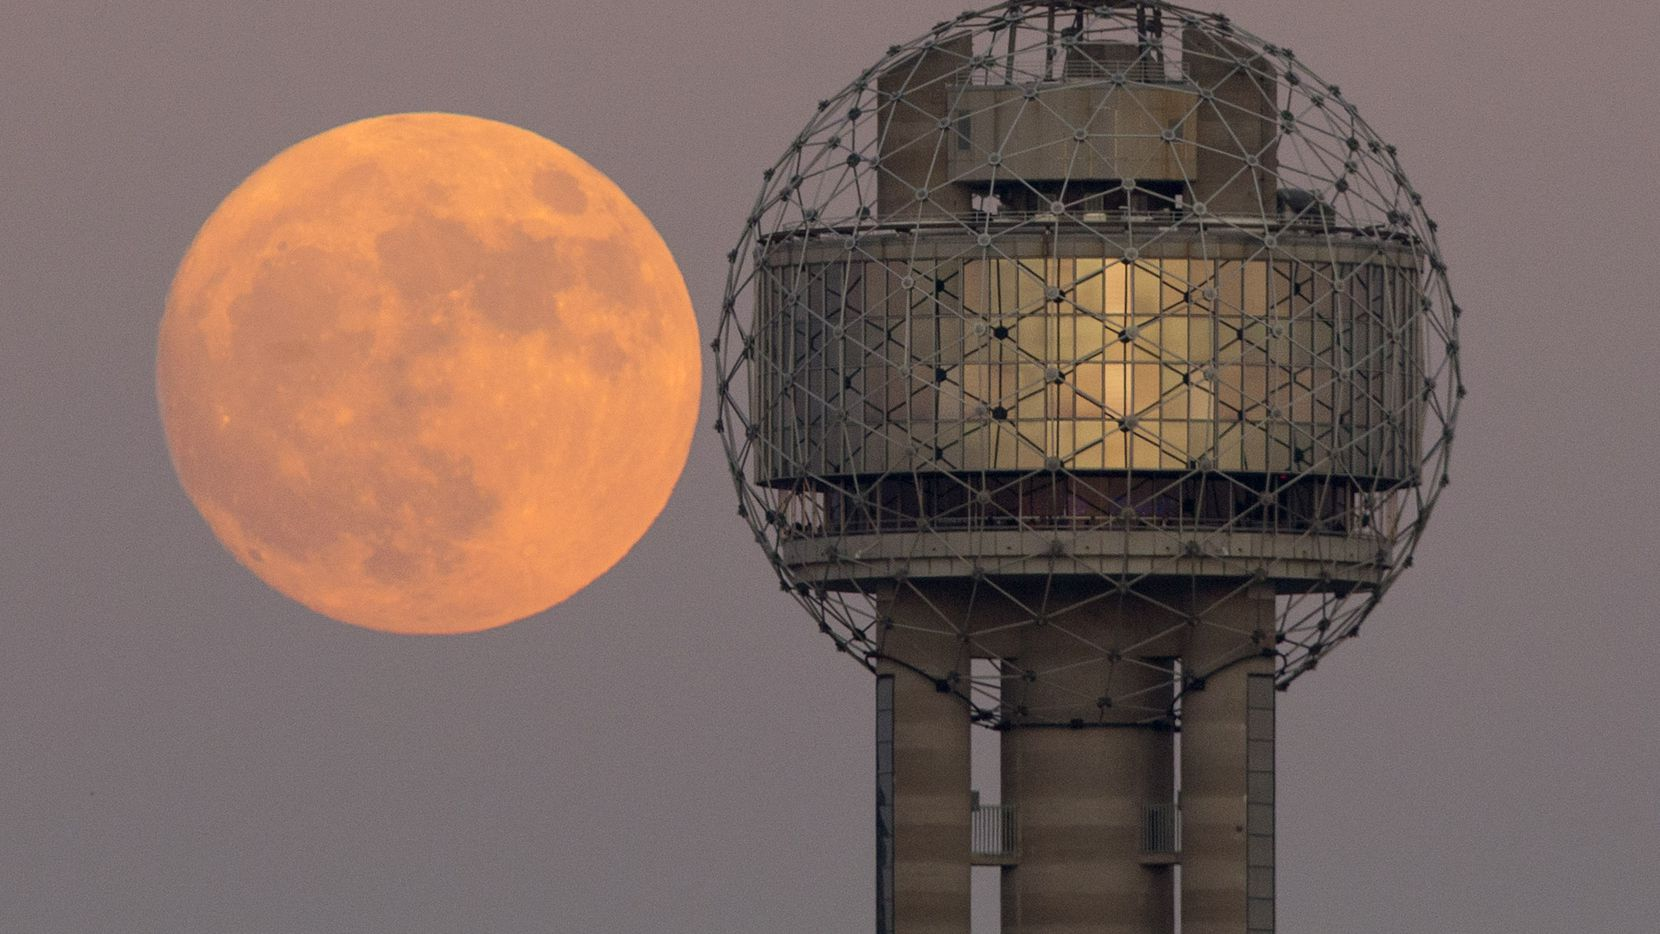 The Supermoon alongside Reunion Tower in downtown Dallas, Sunday evening, November 13, 2016. It will be appear to be larger and brighter in the night sky than it has in nearly 70 years because the point of its orbit is closest to Earth. The last time it passed this close was Jan. 26, 1948.